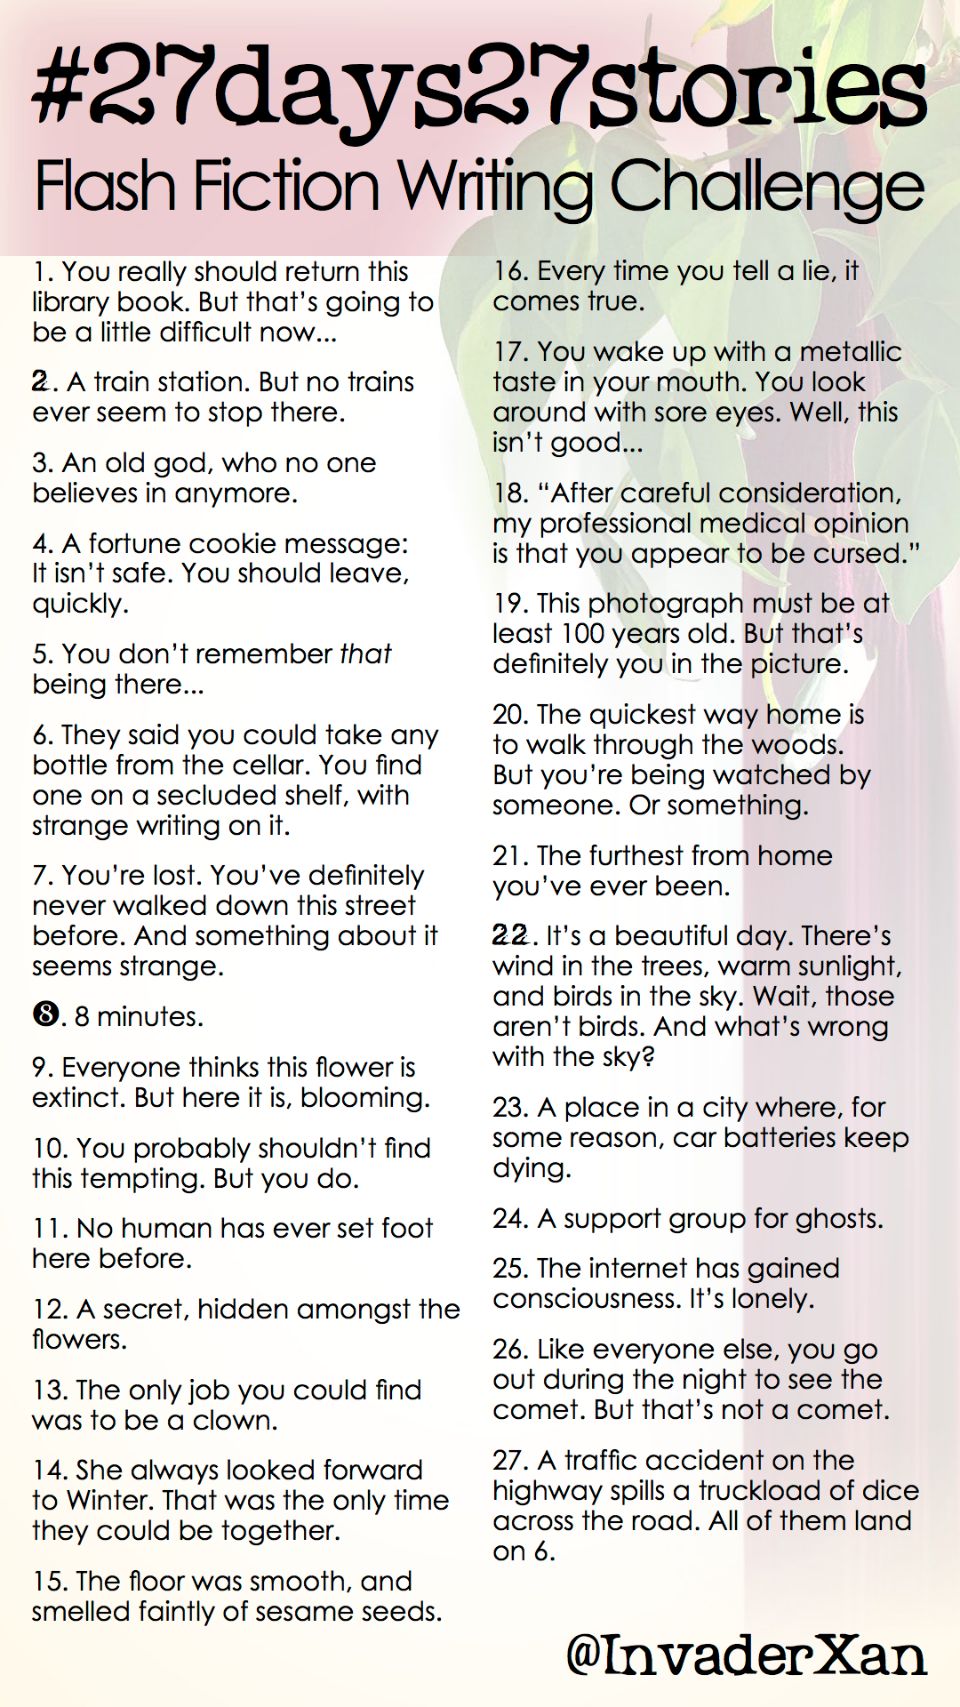 hashtag 27 days 27 stories – Flash fiction writing challenge. This is a graphic prompt and I'm afraid I don't have enough characters to write out everything here. Details in plain text format are available in the link attached to this post!